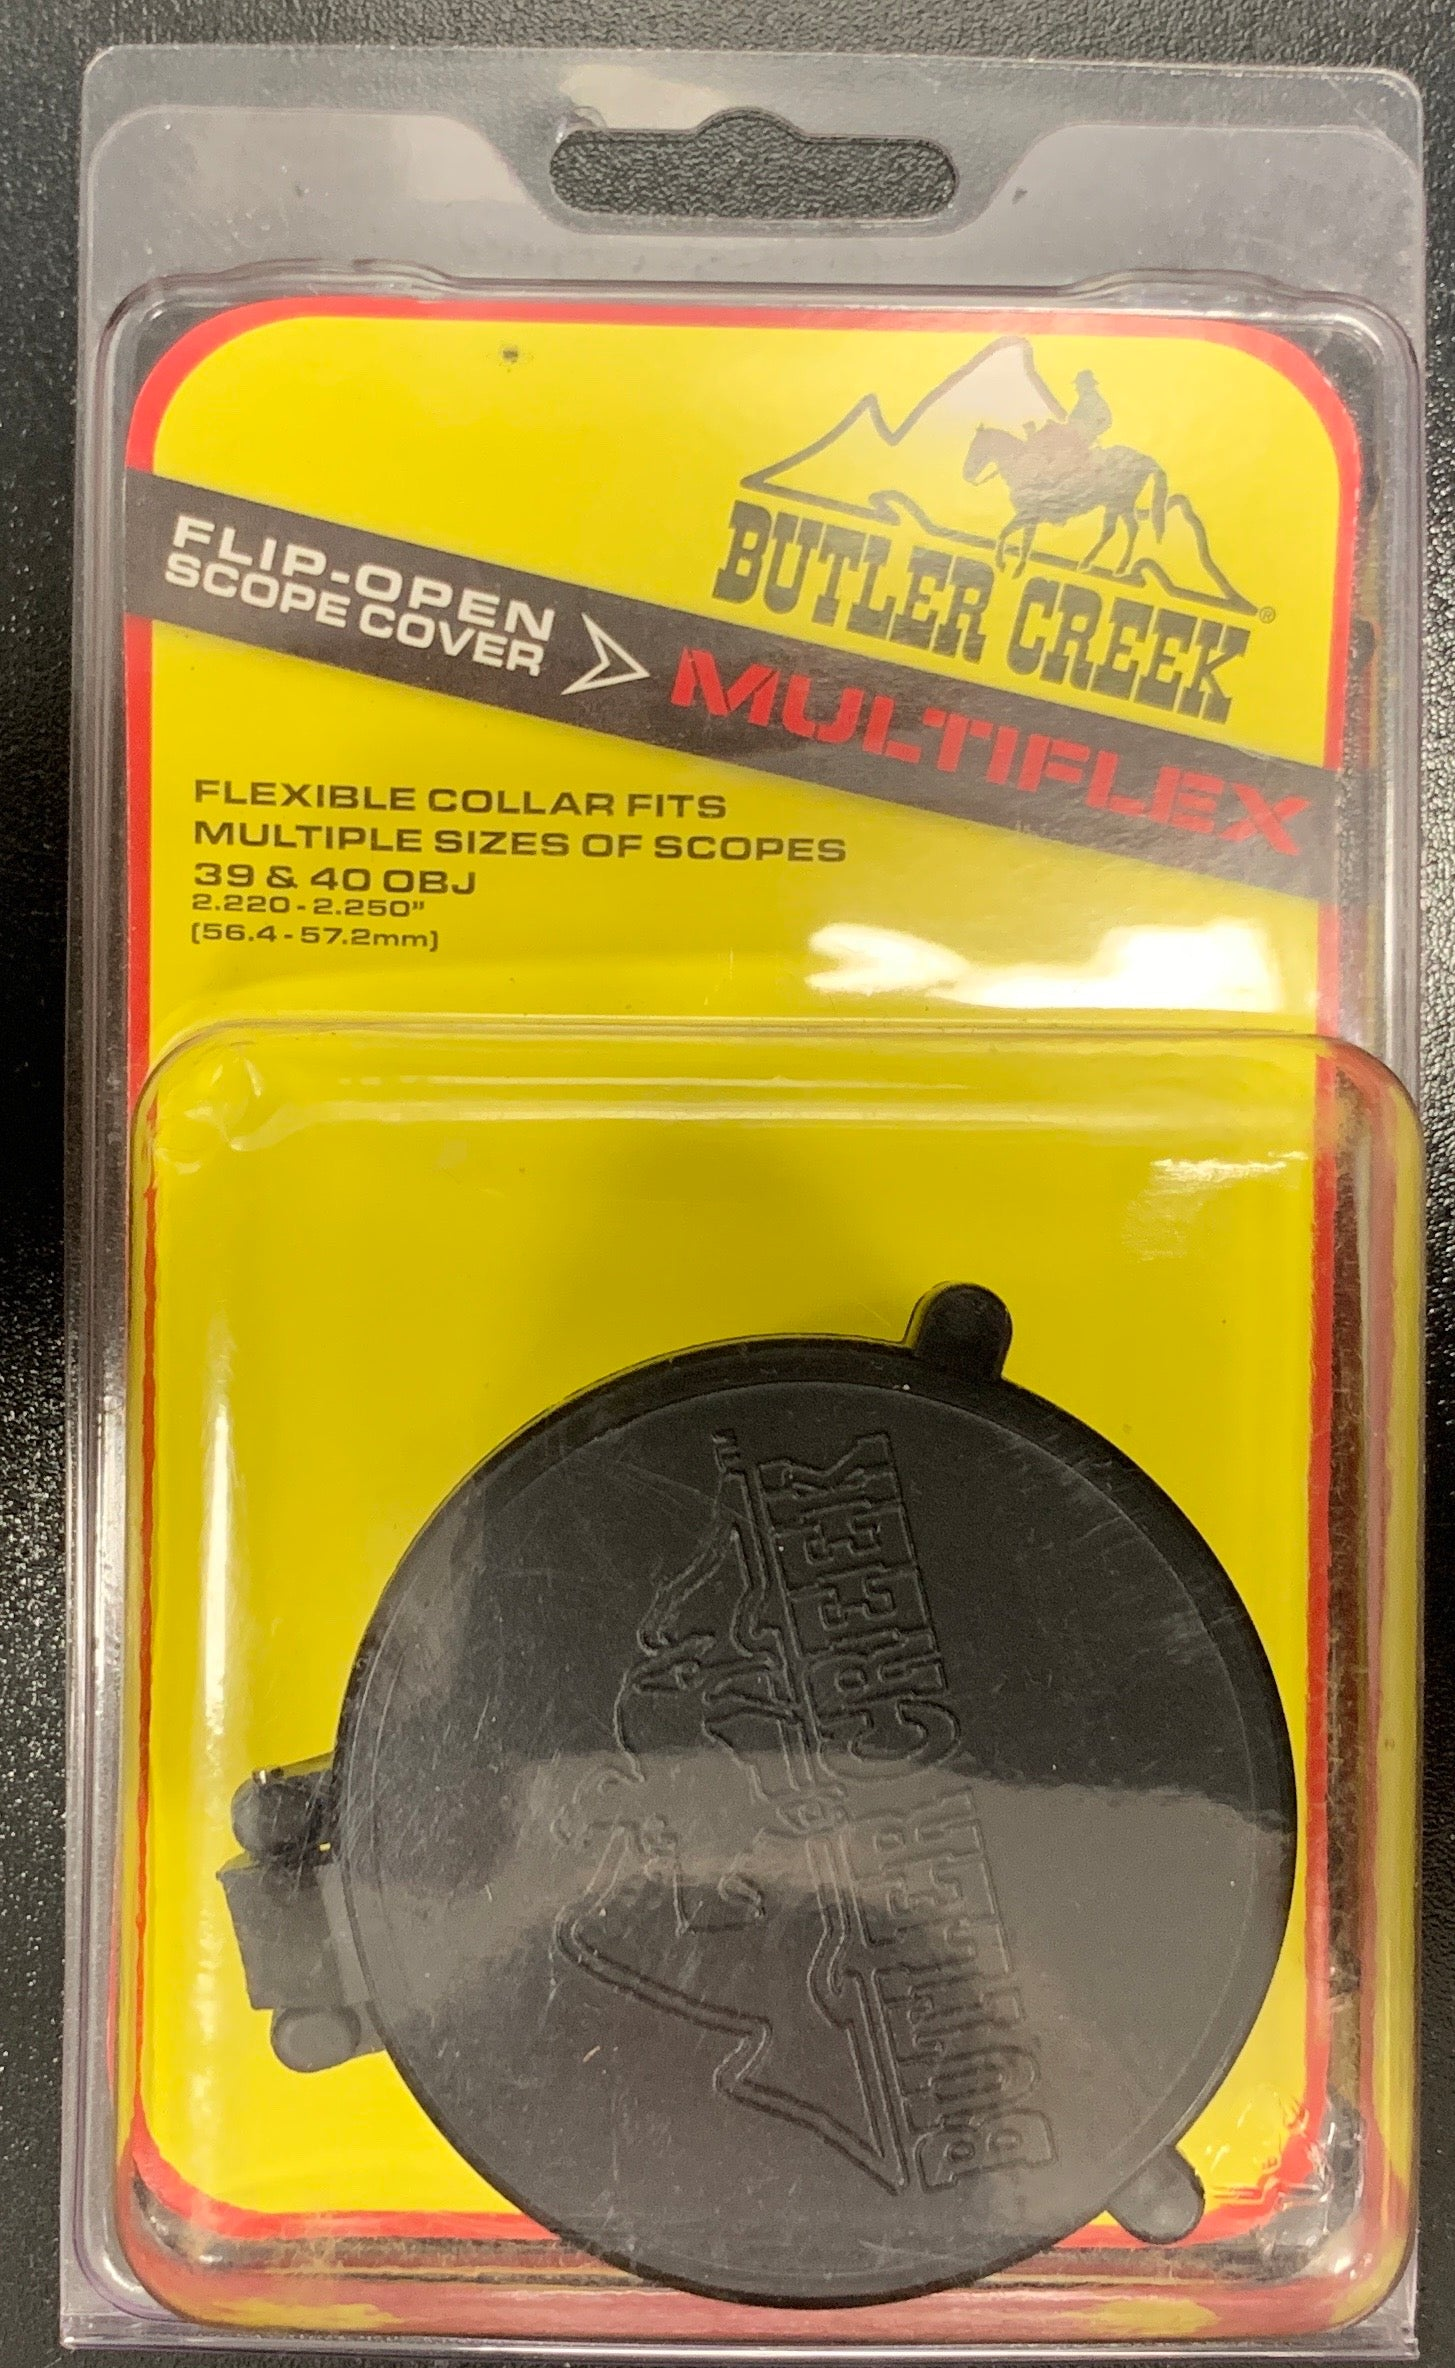 Butler Creek Scope Cover #33940